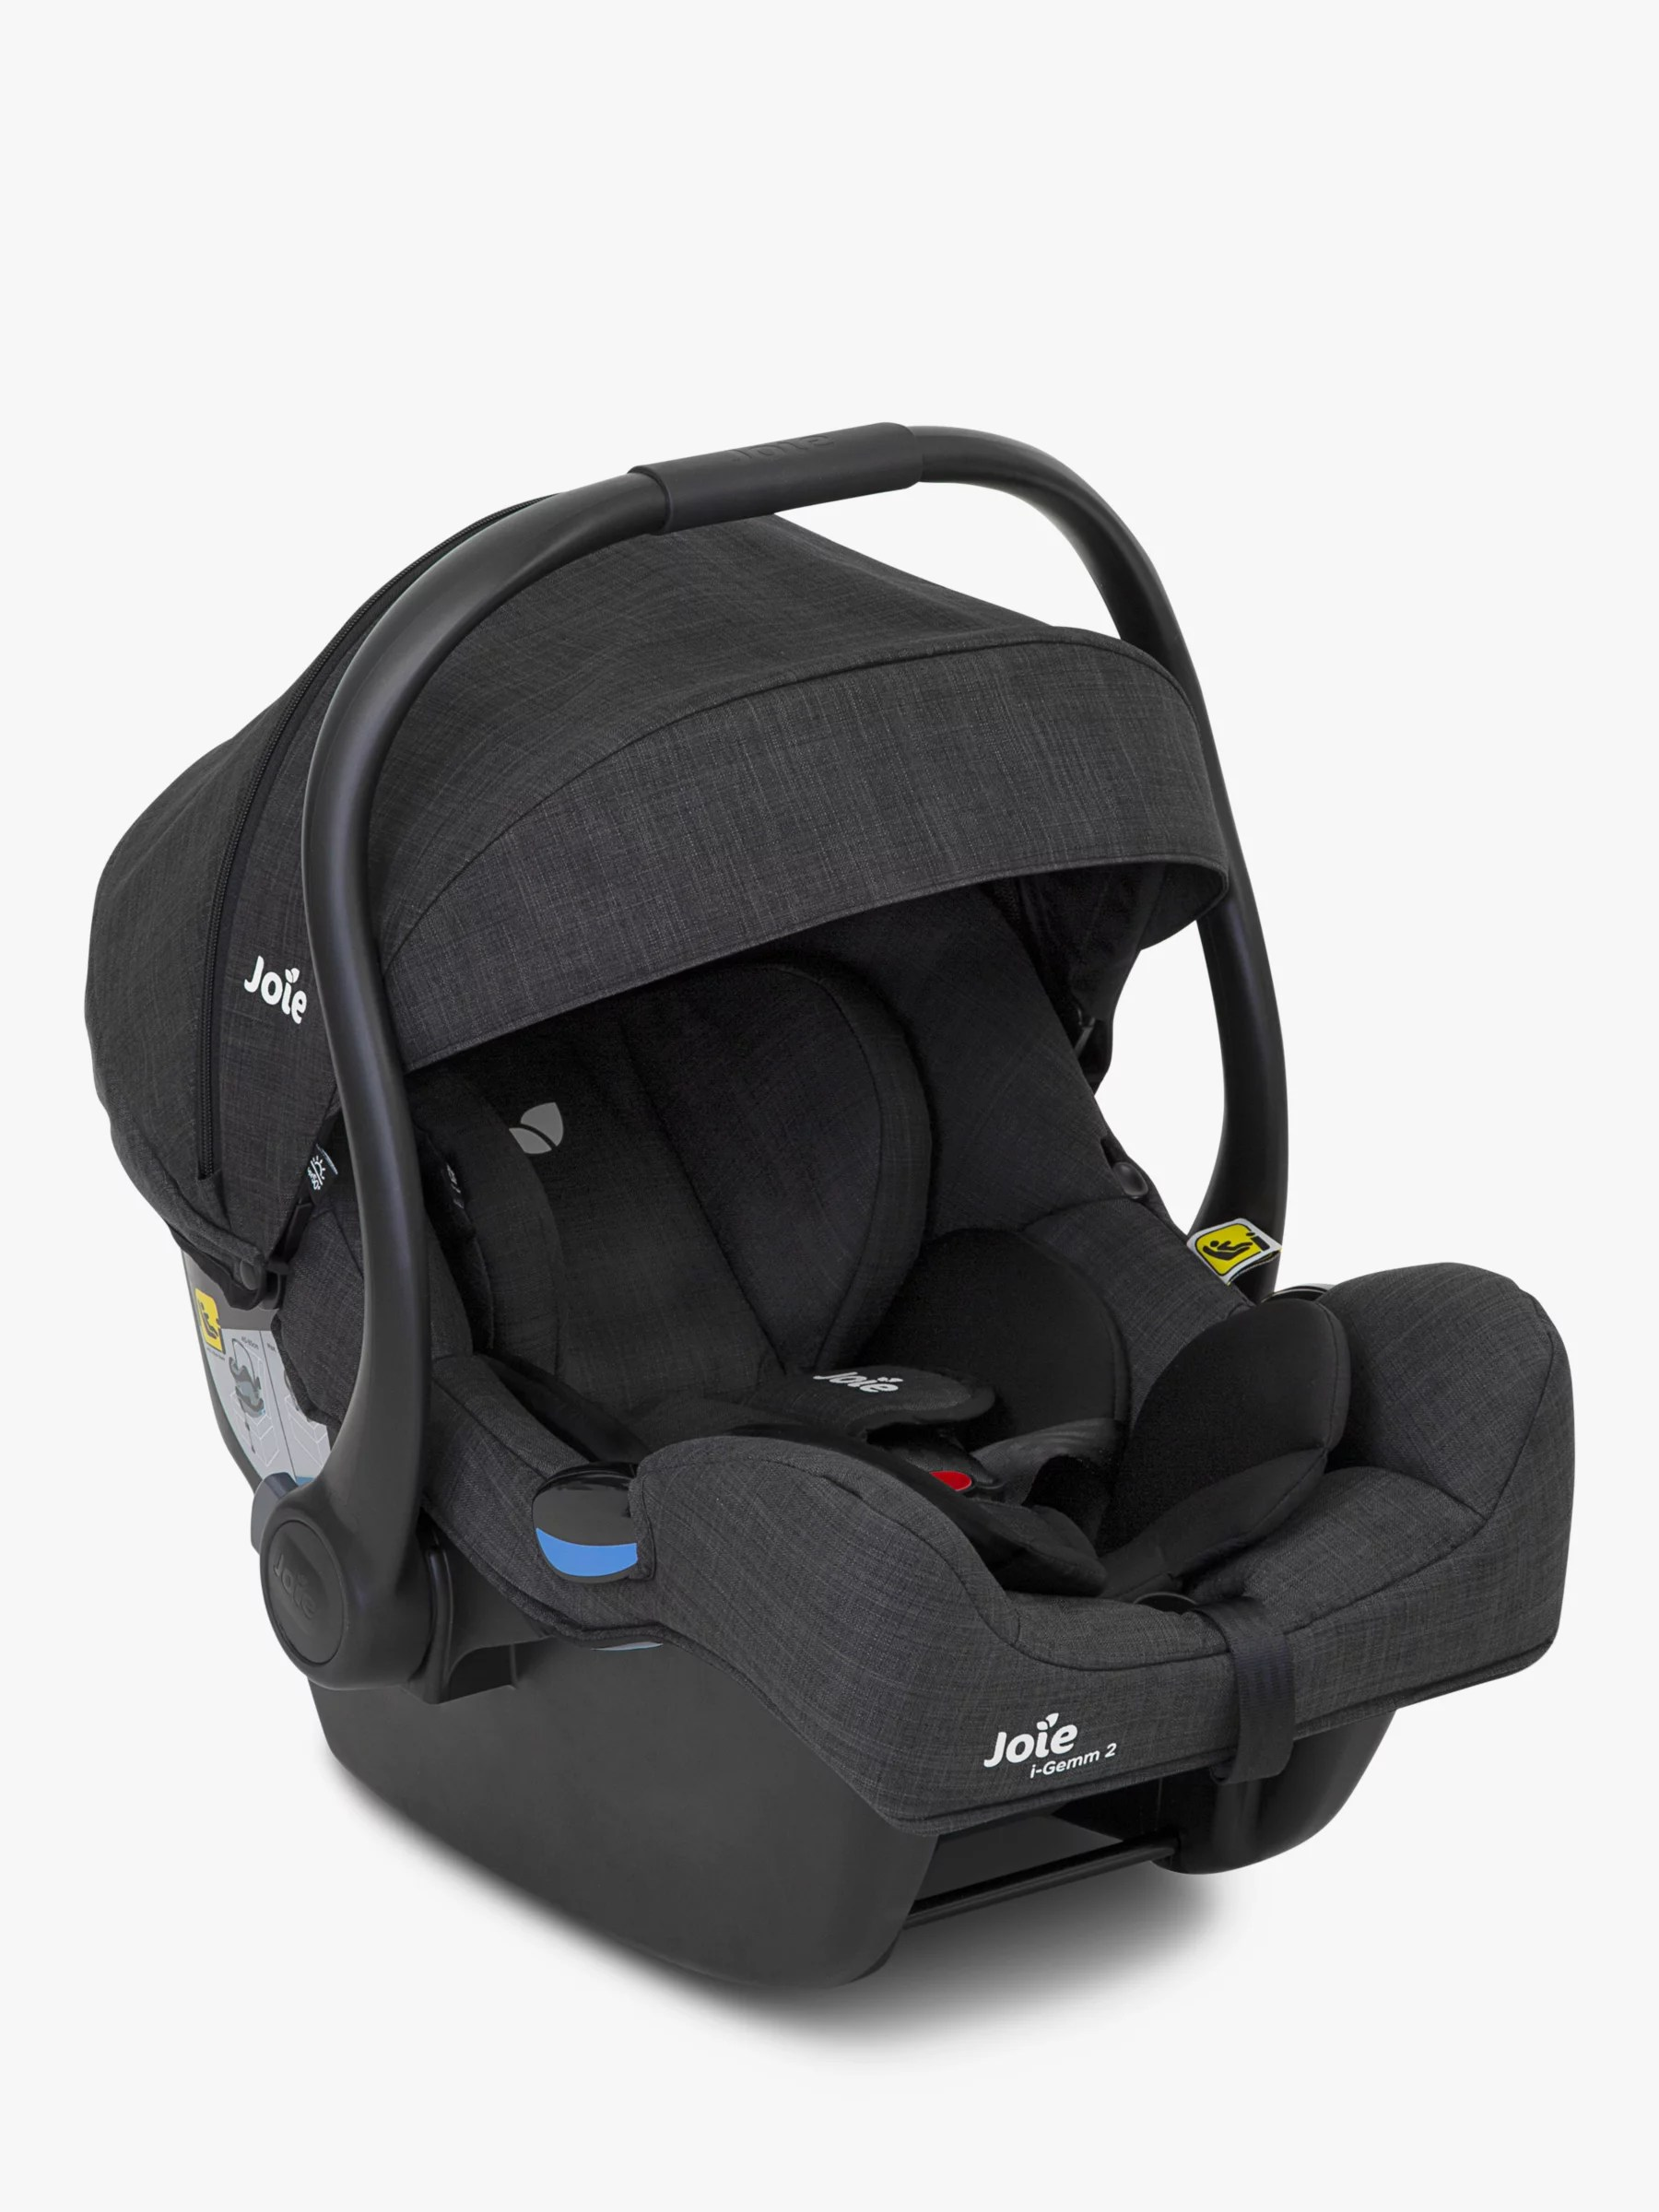 Joie Buggy Chrome Test Joie Baby I Gemm Group Baby Car Seat Pavement Grey